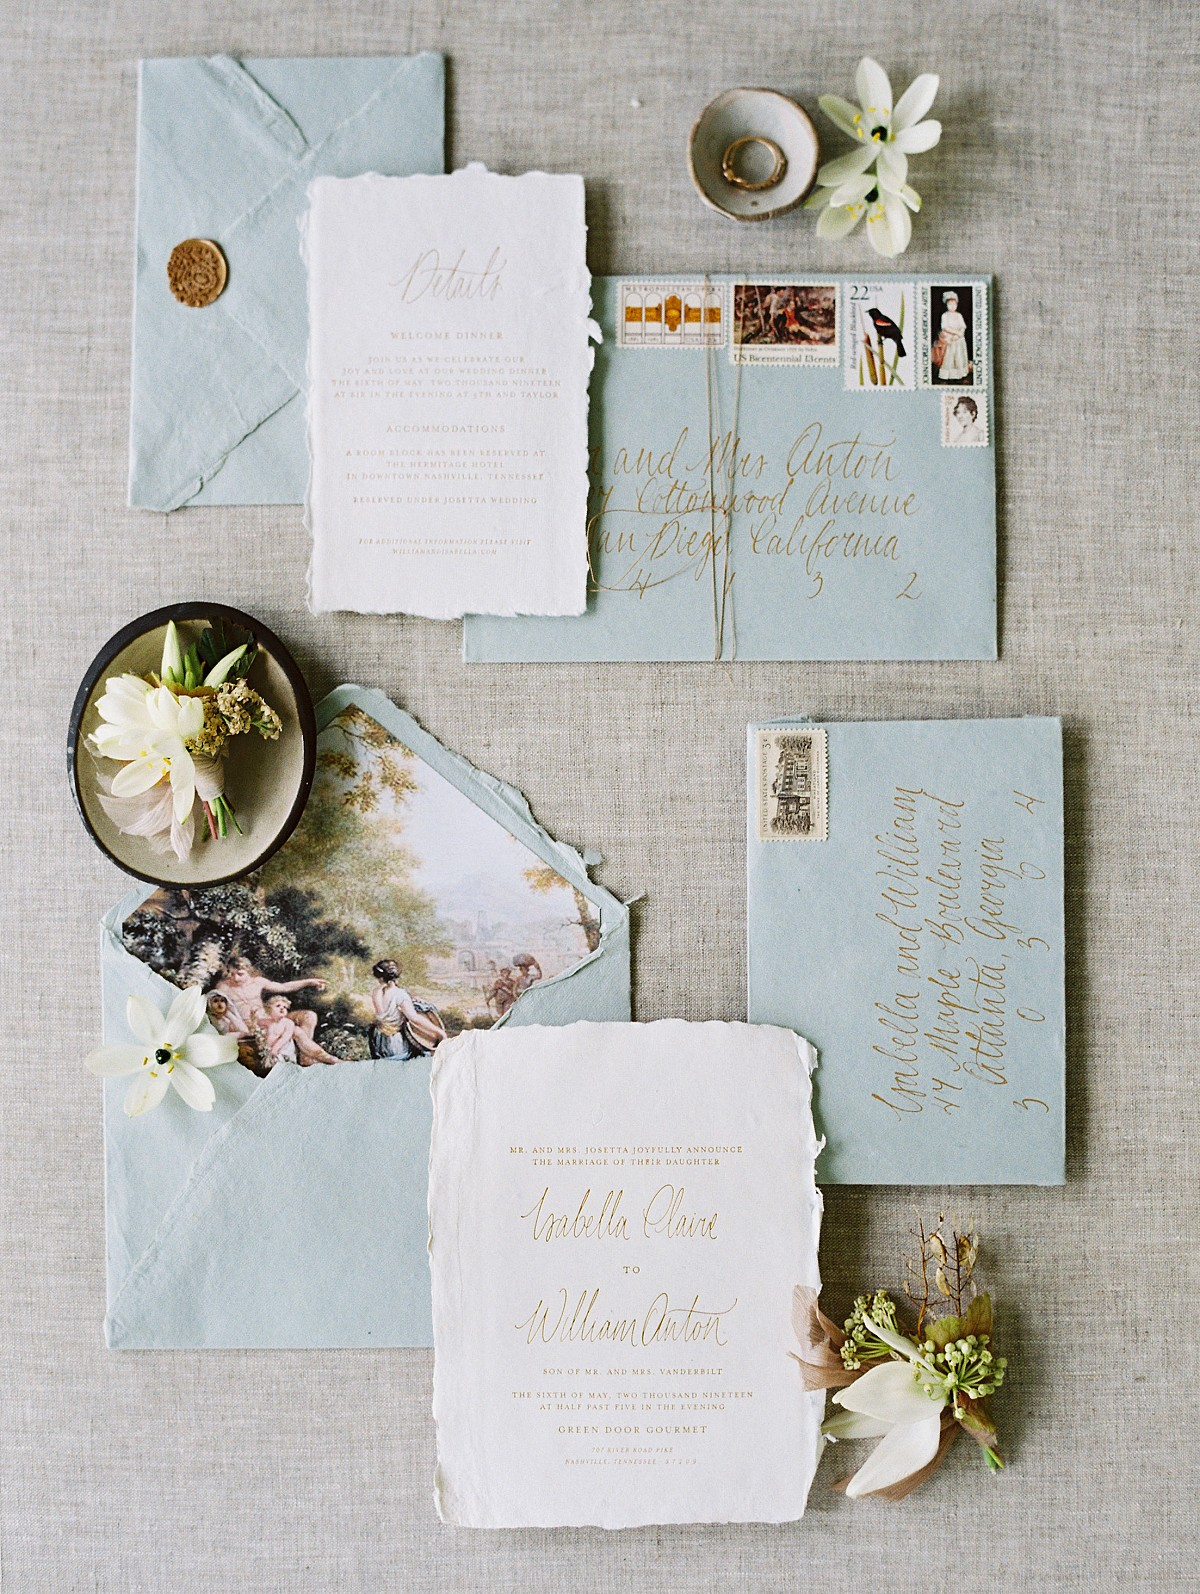 How To Design Your Wedding with a Story in Mind